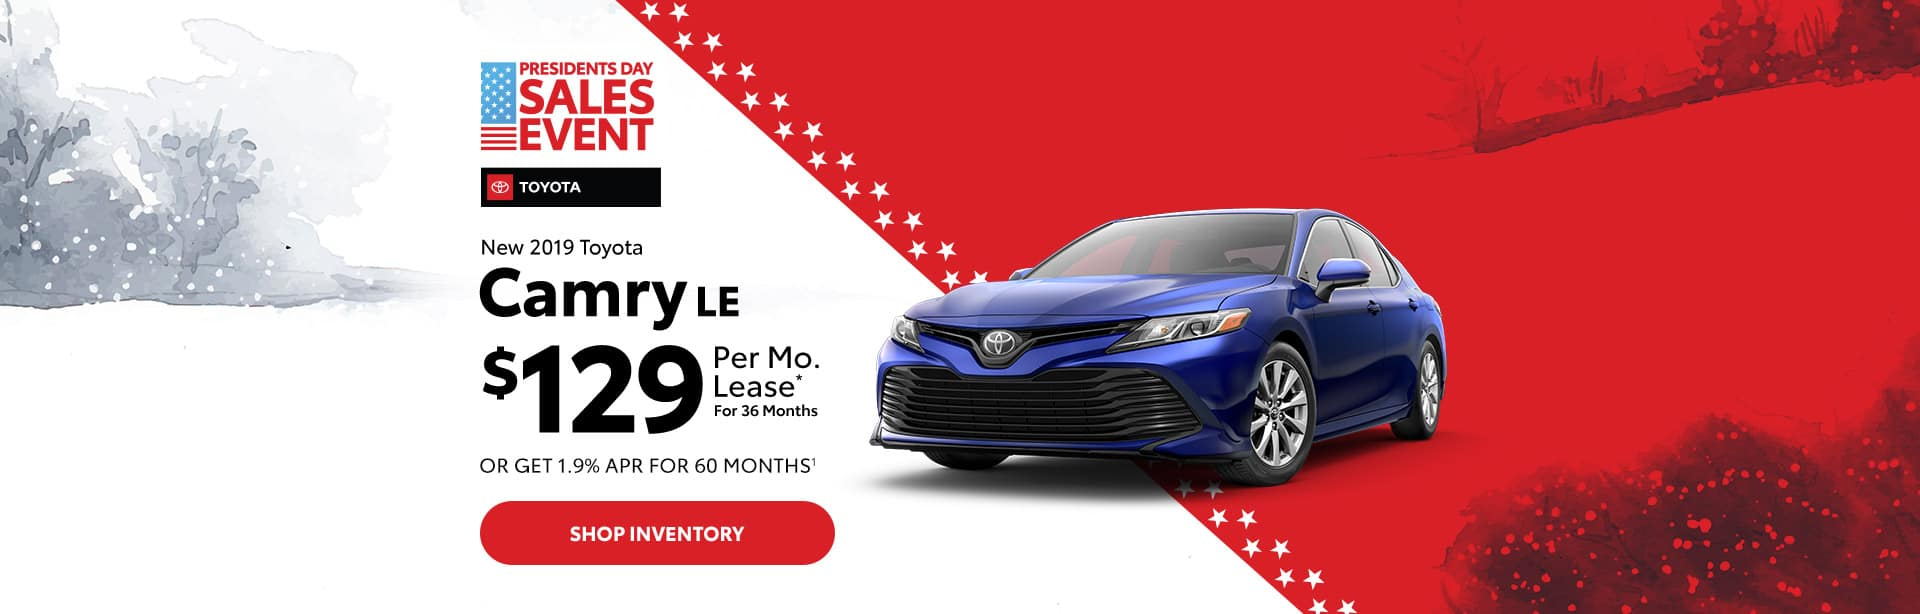 Toyota Camry Lease and Finance Special in Columbus, Indiana.